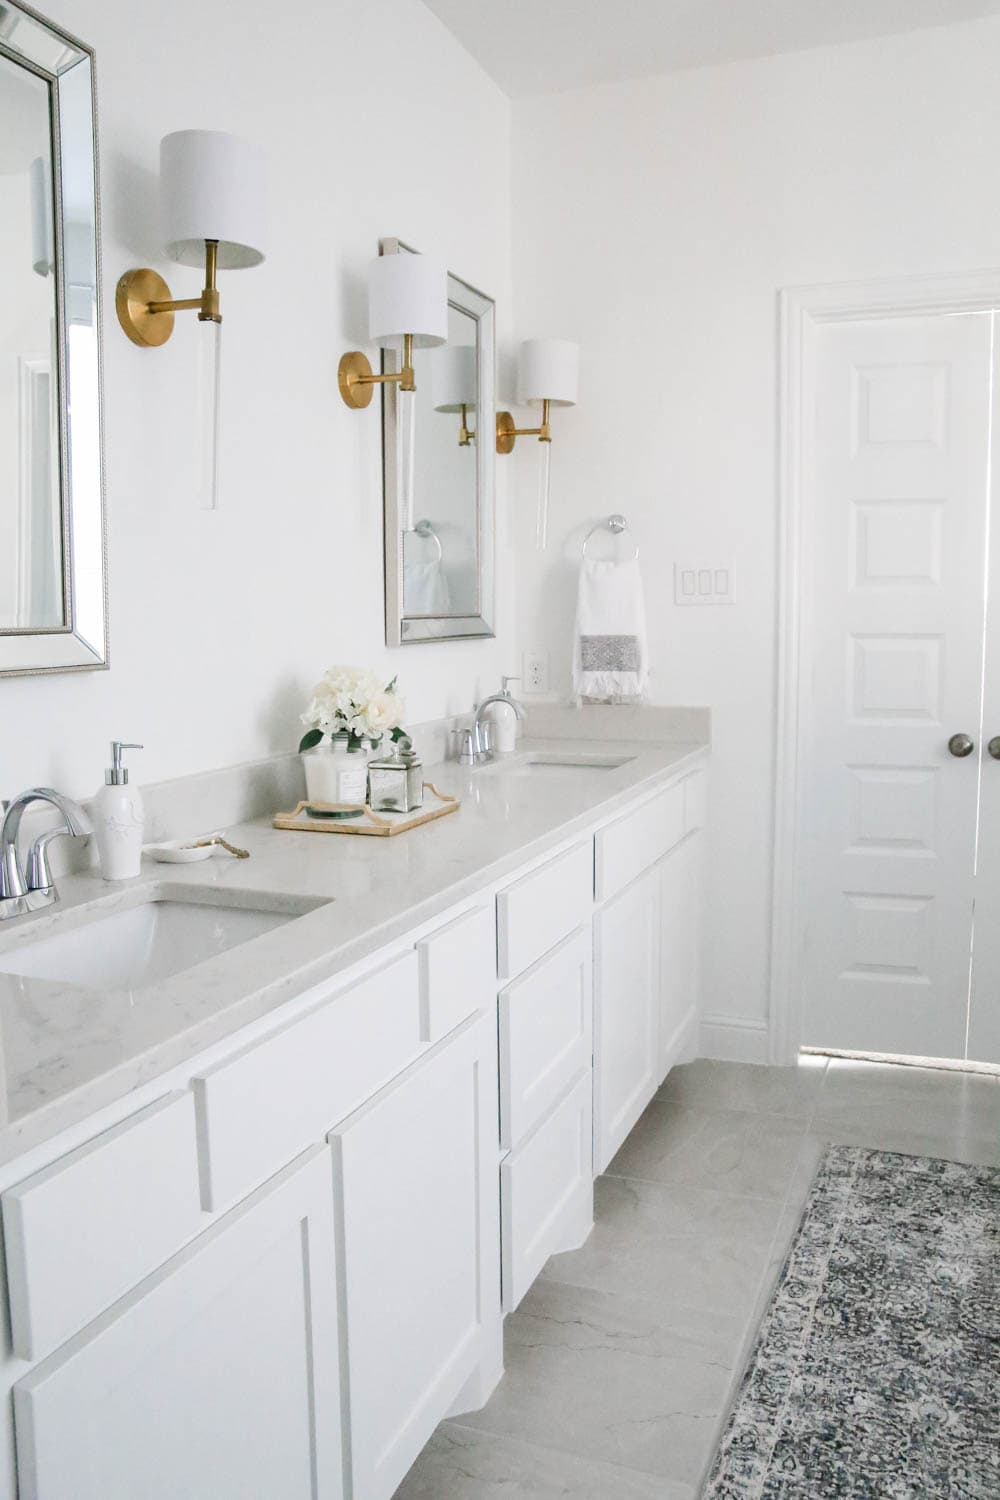 Add affordable decorative layers to your bathroom to refresh the space with these amazing finds from At Home Stores! #AtHomeStores #AtHomeFinds #ABlissfulNest #ad